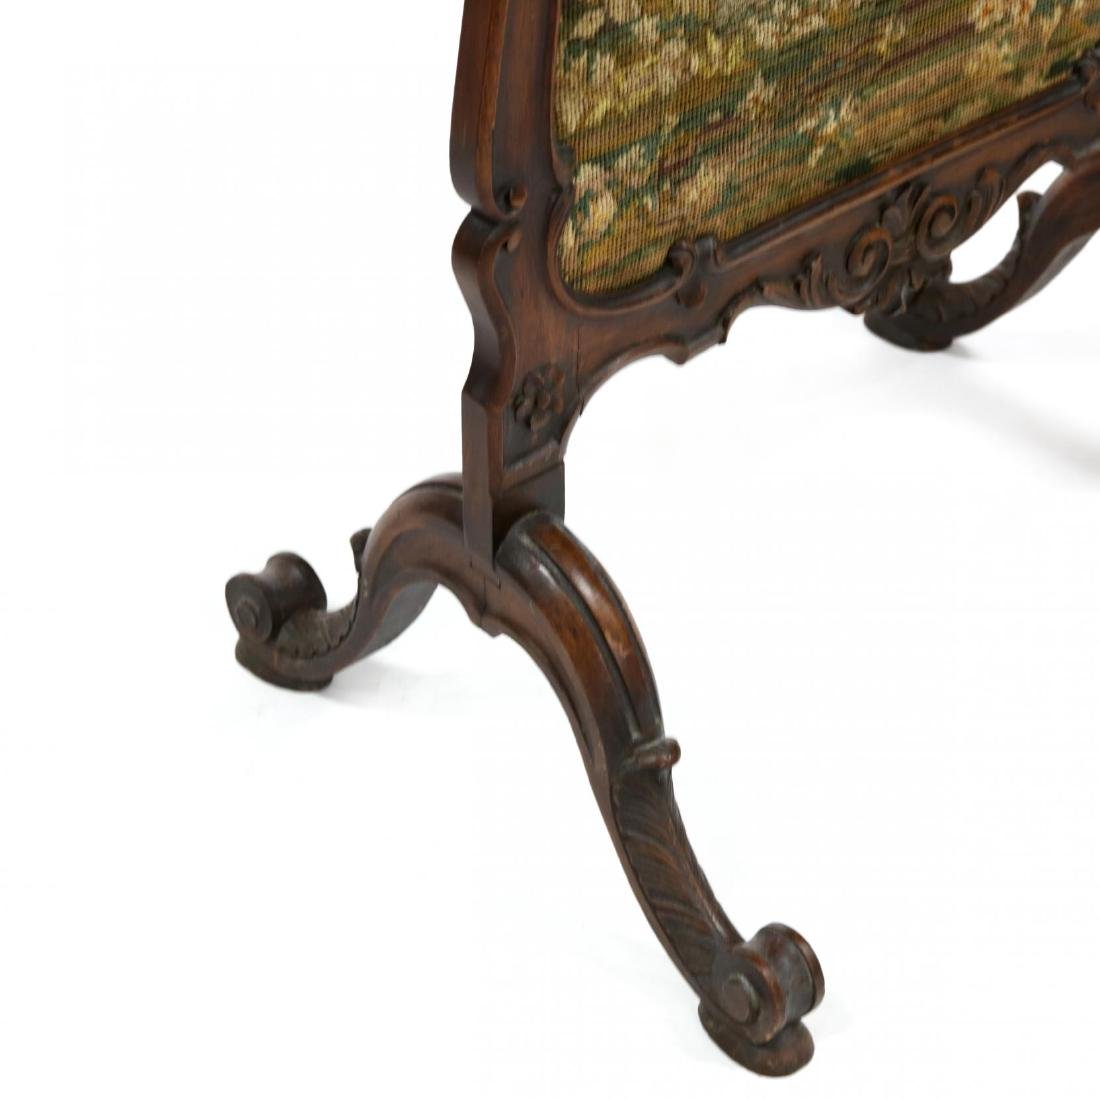 Rococo Revival Carved Walnut Fire Screen - 2